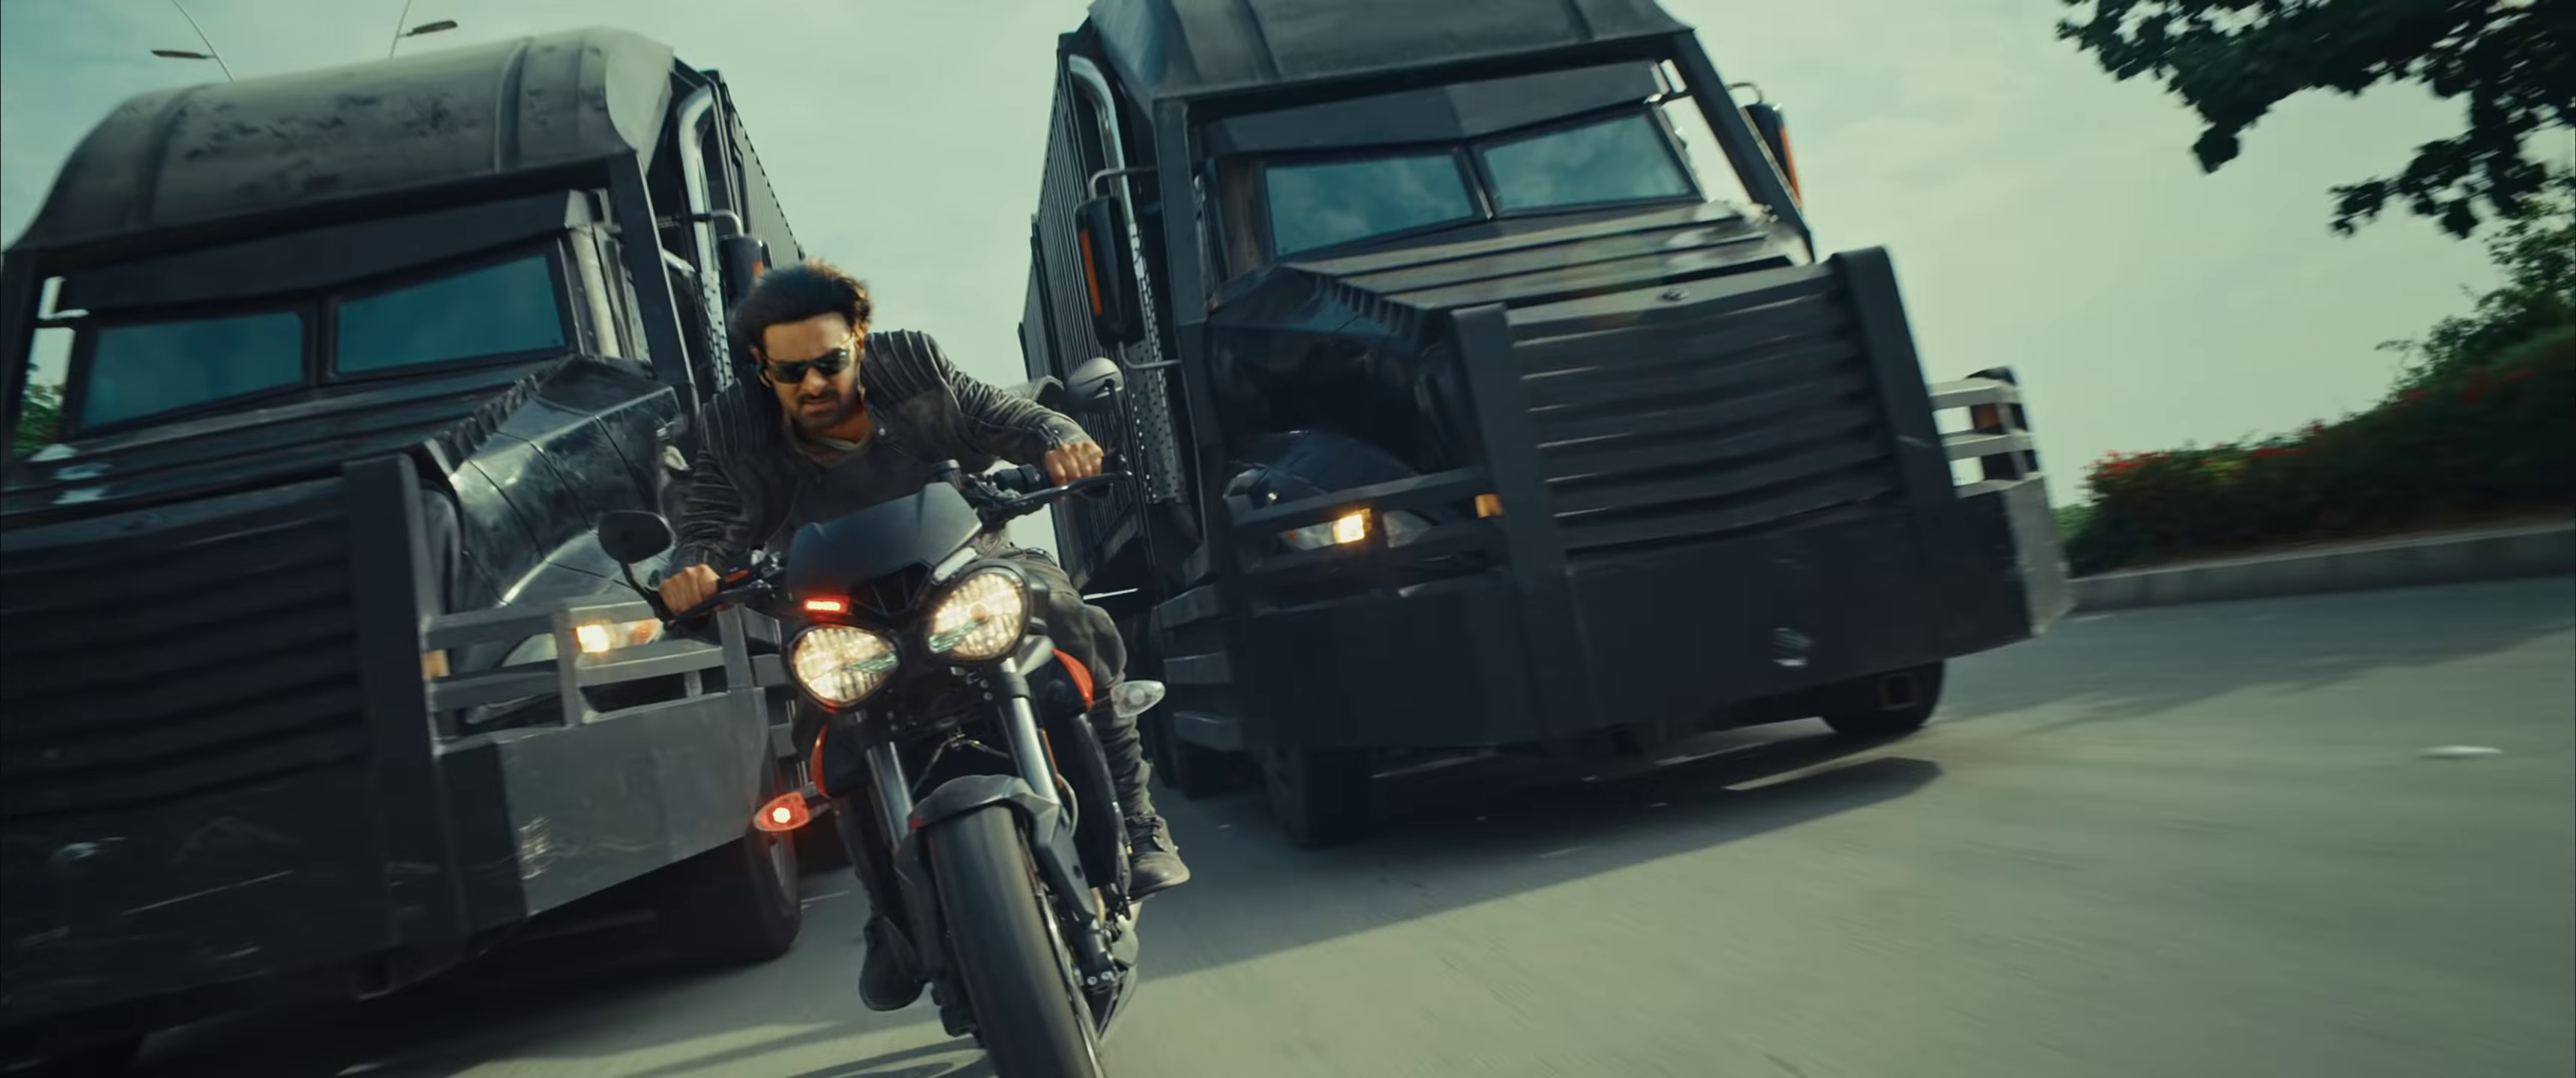 Actor Prabhas Saaho teaser crosses 25 Million Digital Views in 6 hrs